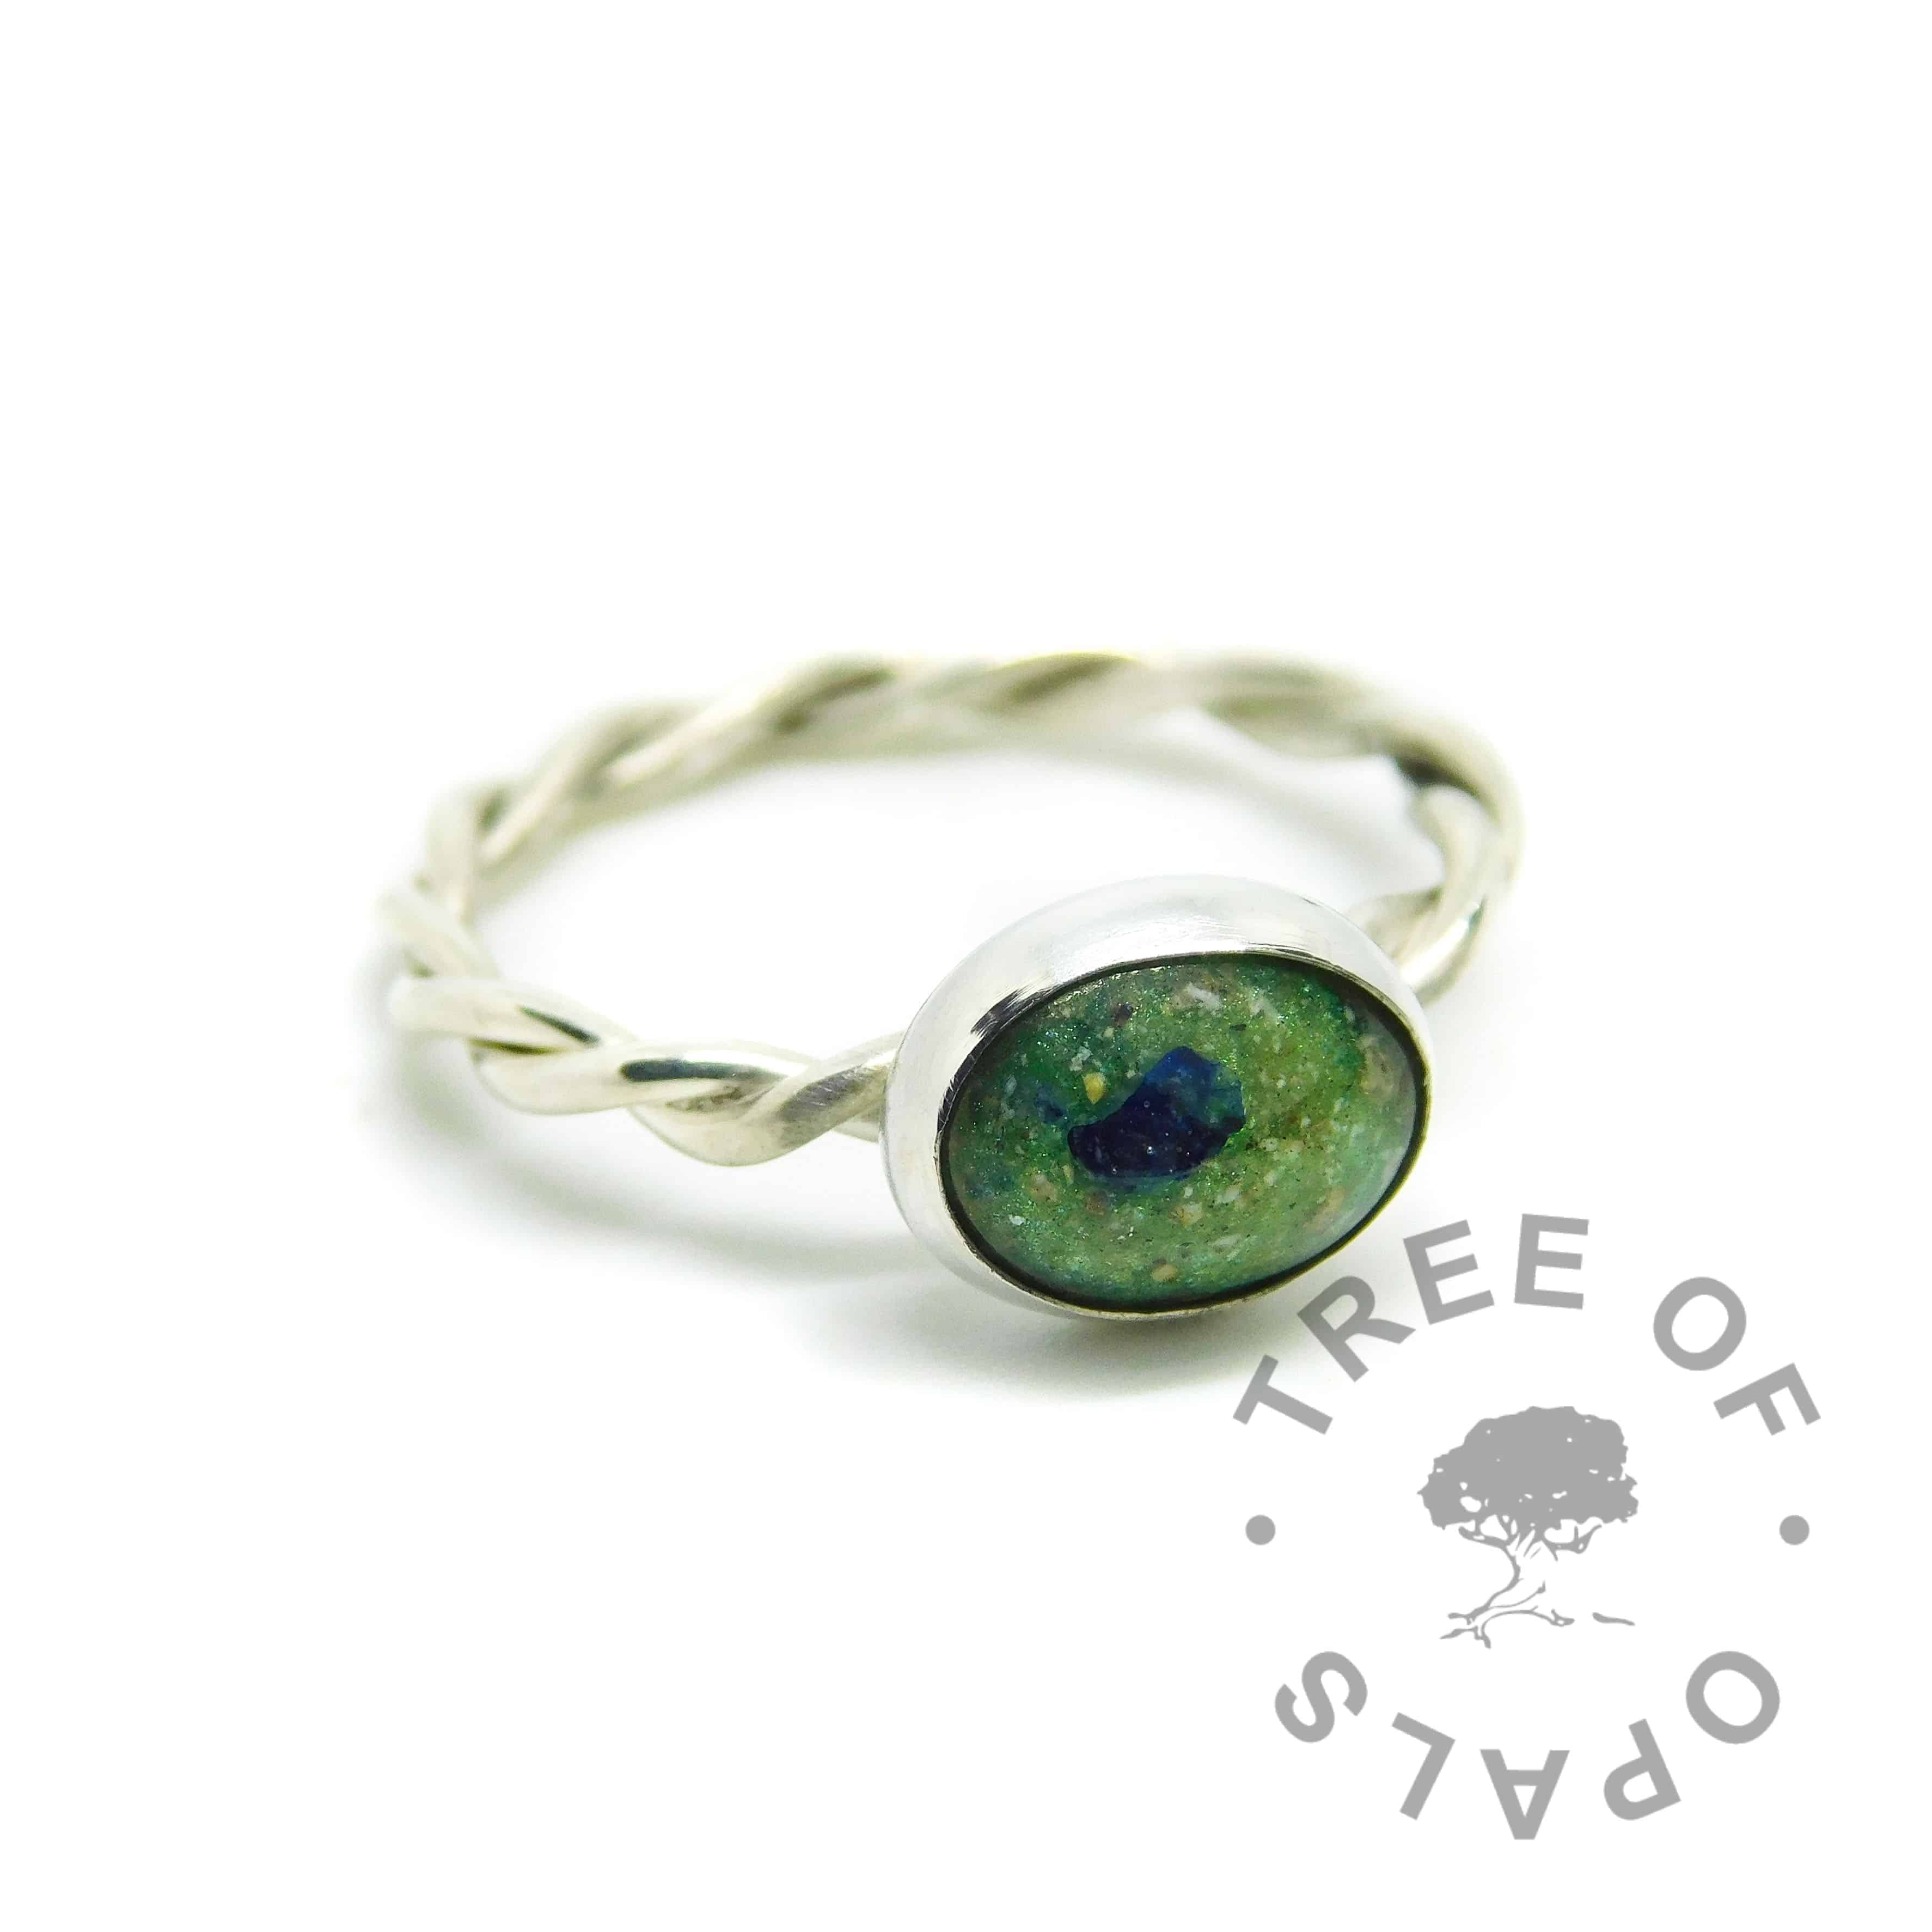 Mystery piece, cremation ash ring with basilisk green resin sparkle mix, with rough natural sapphire September birthstone. Handmade twisted band EcoSilver ring shank, 10x8mm bezel cup. Watermarked copyright Tree of Opals memorial jewellery image